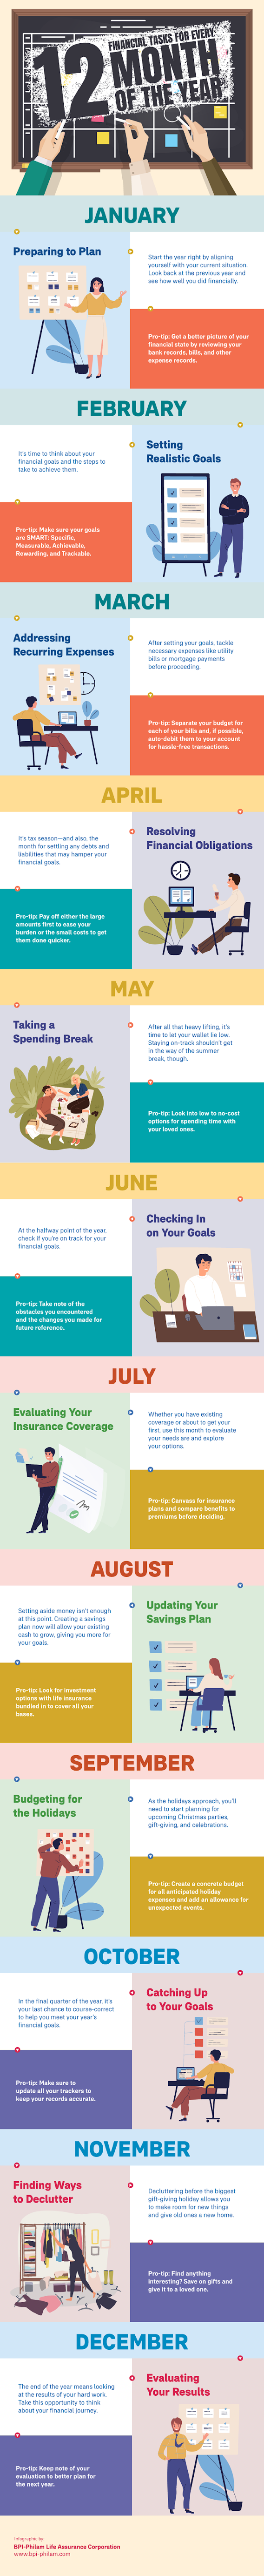 12-financial-tasks-for-every-month-of-the-year-infographic